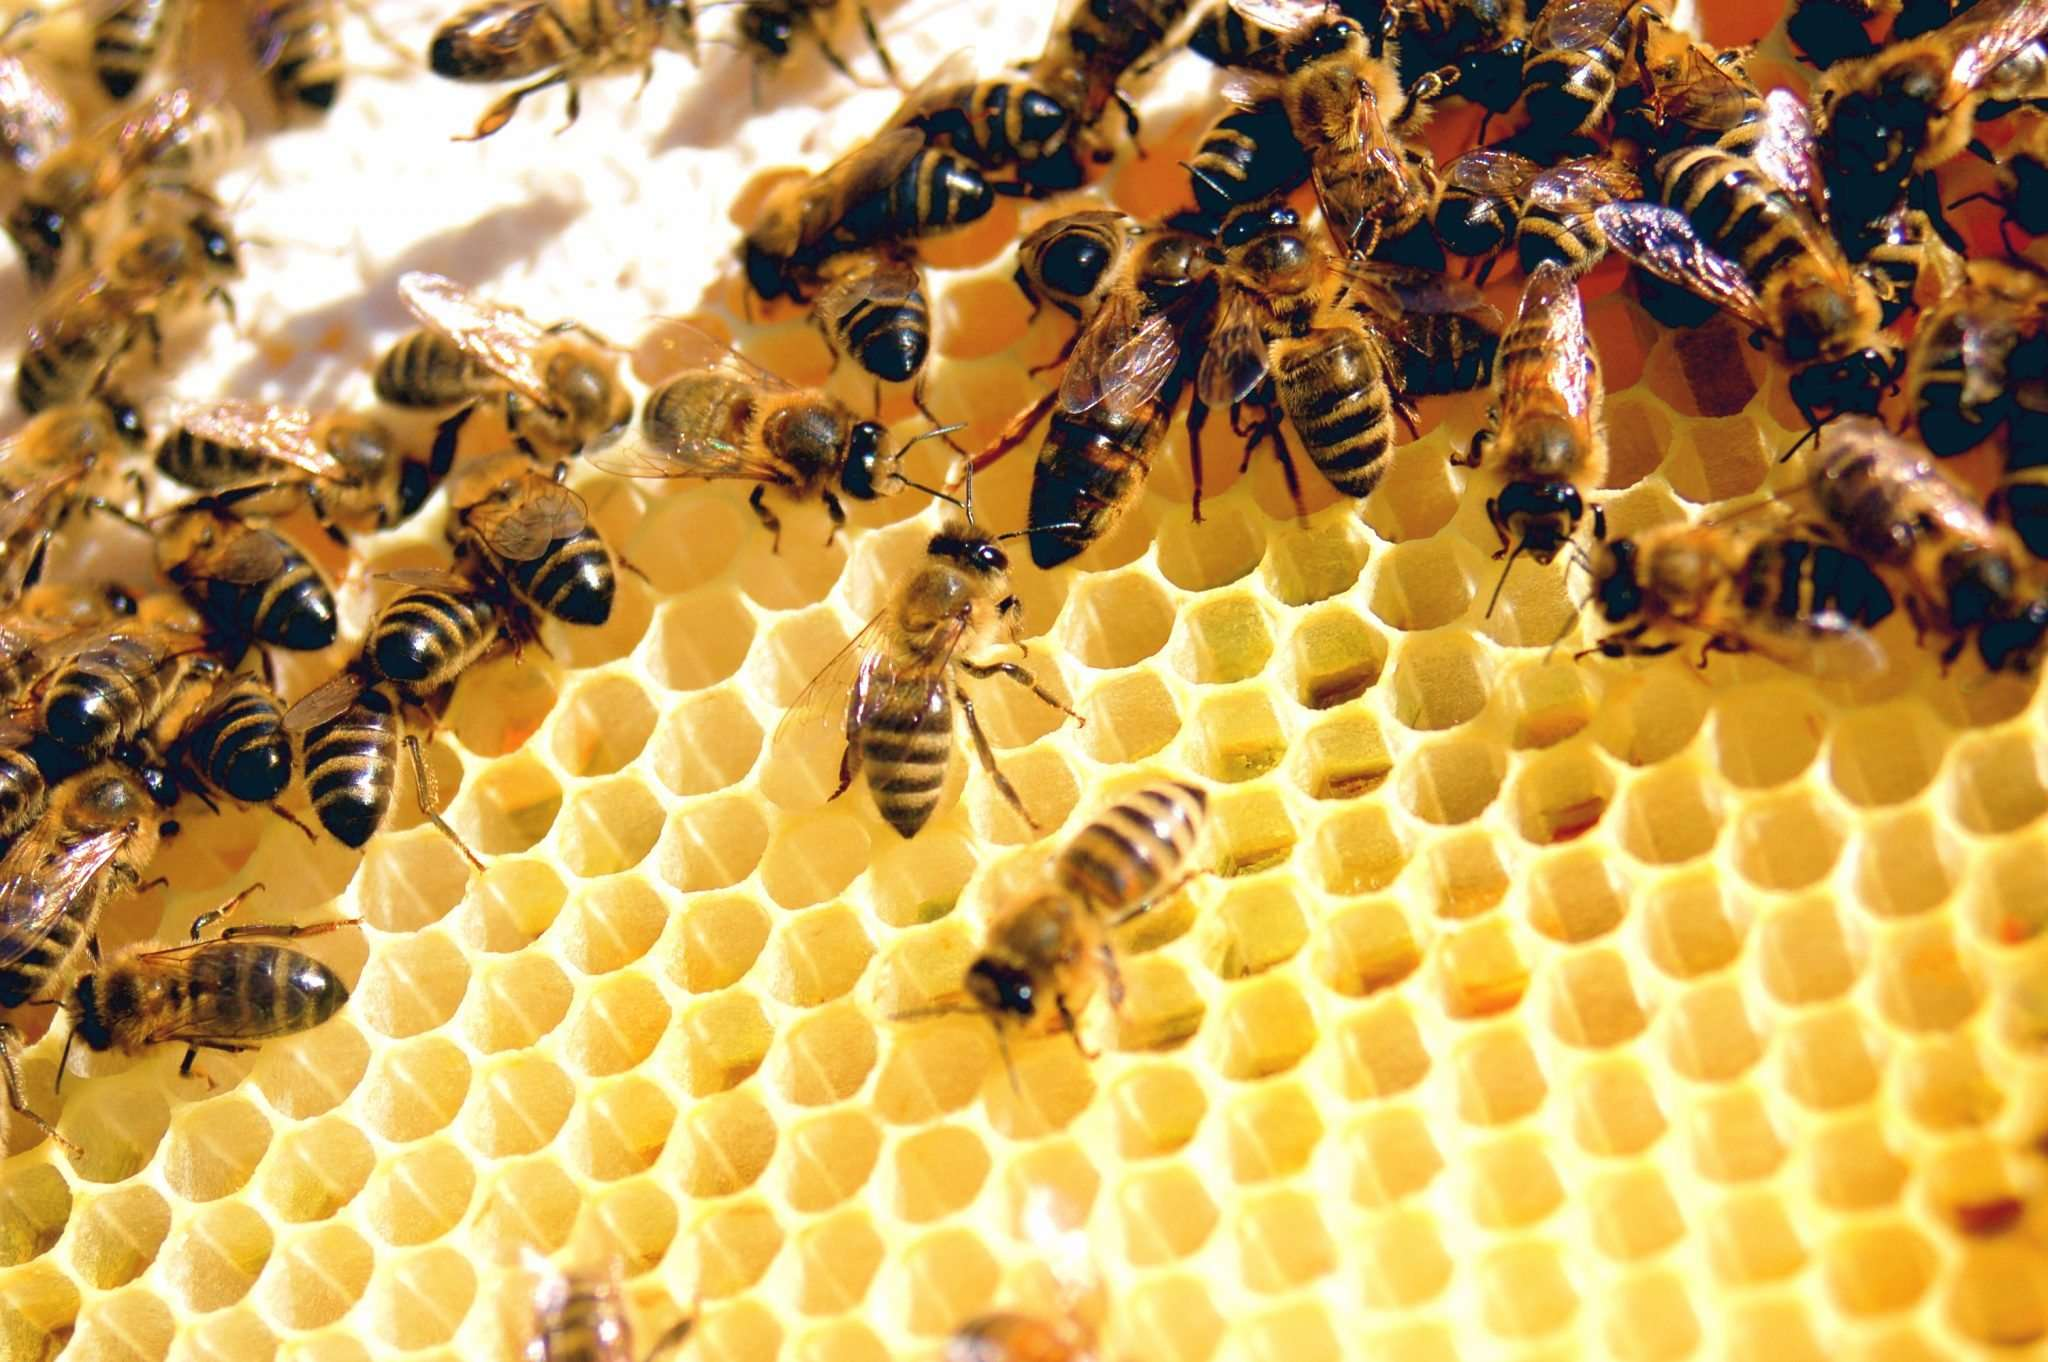 photo of worker bees by Todd Hufman